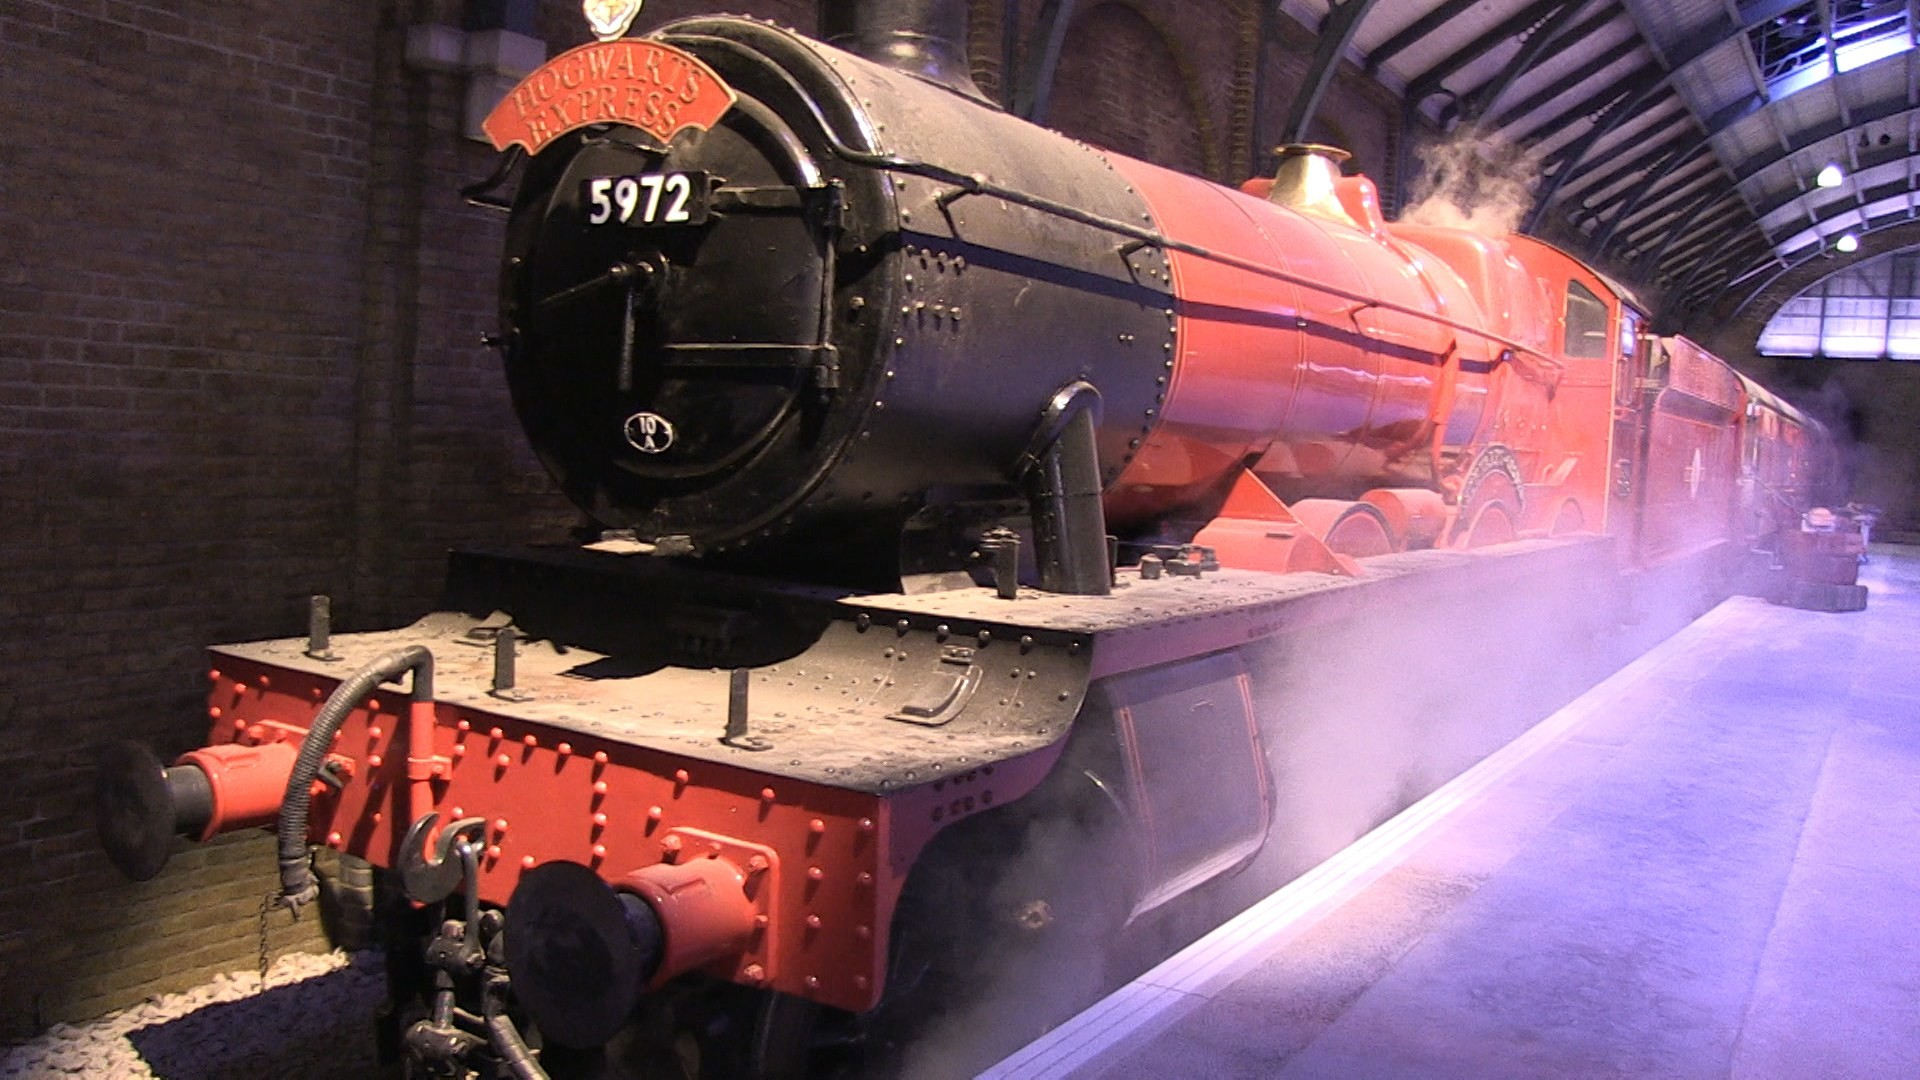 Res: 1920x1080, HeyUGuys Visit Platform 9 ¾ for a Sneak Peek at The Hogwarts Express at  Warner Bros. Studio Tour